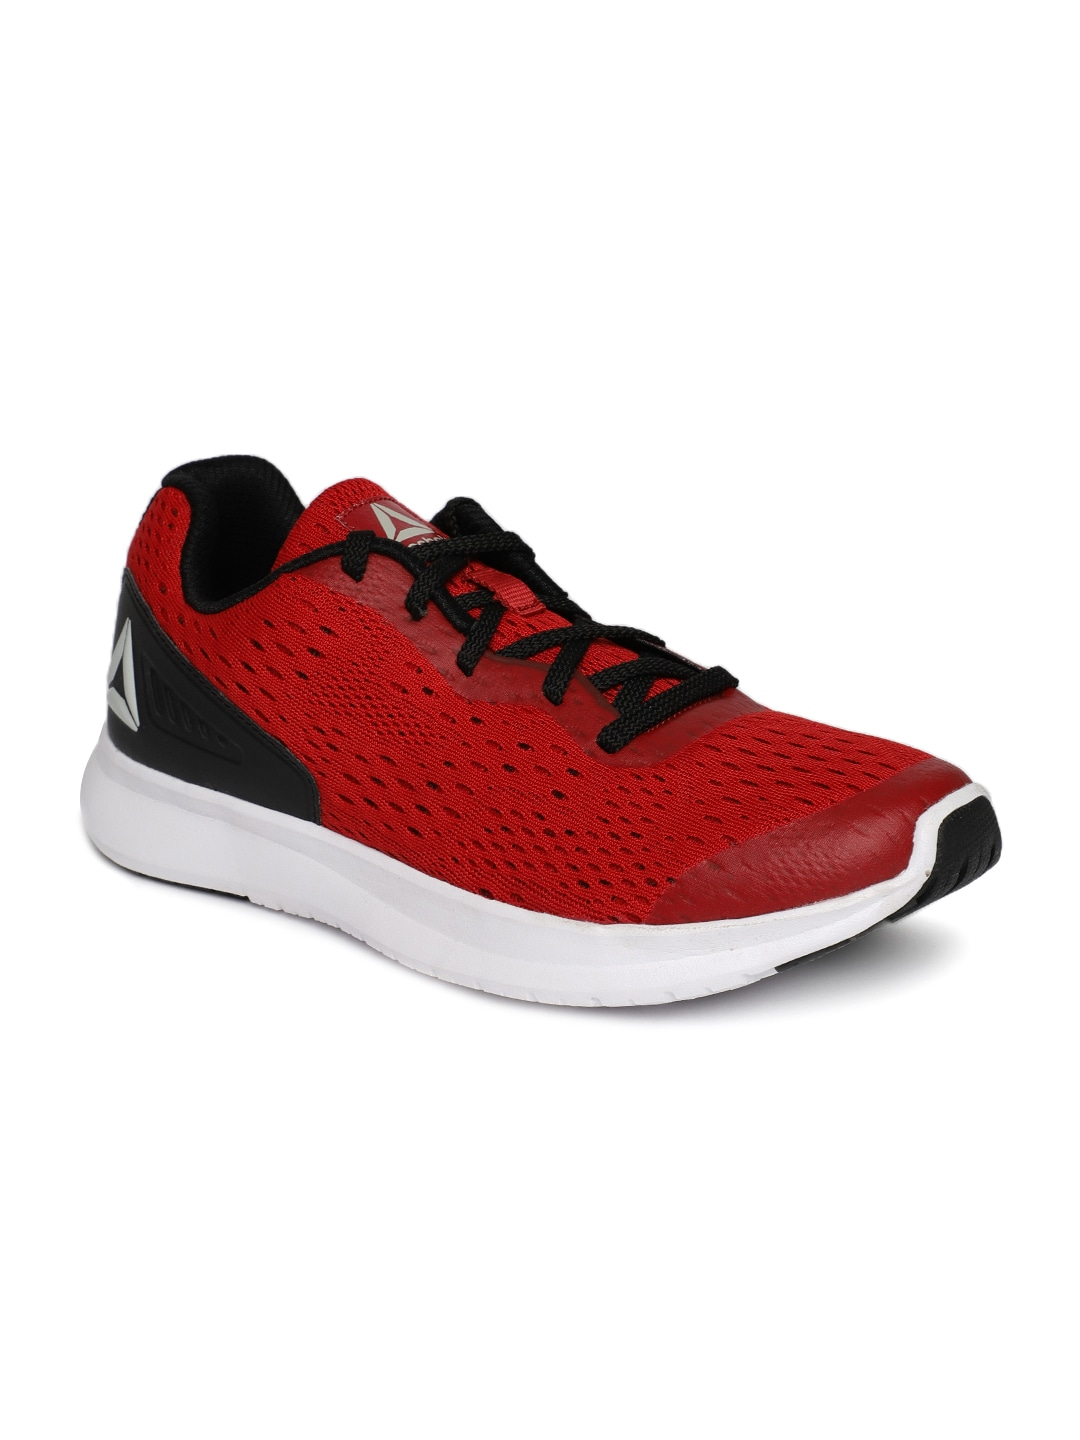 43736c7b181 Reebok Shoes Red And White - Buy Reebok Shoes Red And White online in India